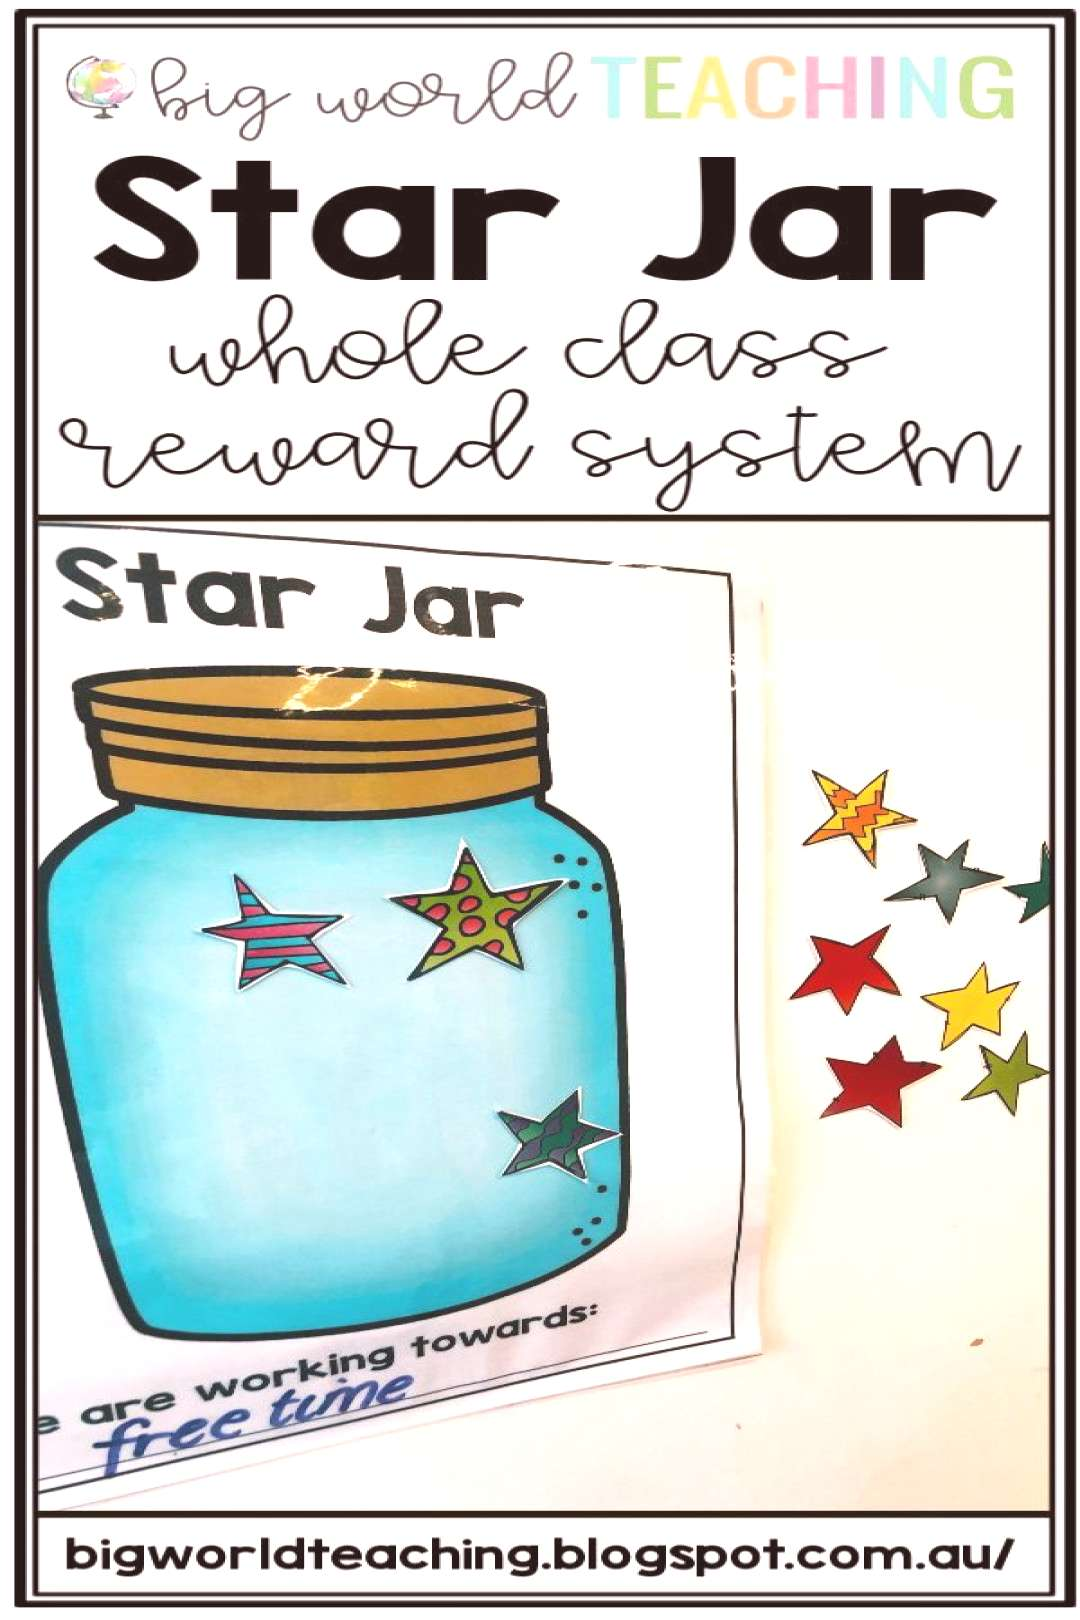 FREE PRINTABLE! Whole class rewards are perfect to encourage classroom culture and a team approach